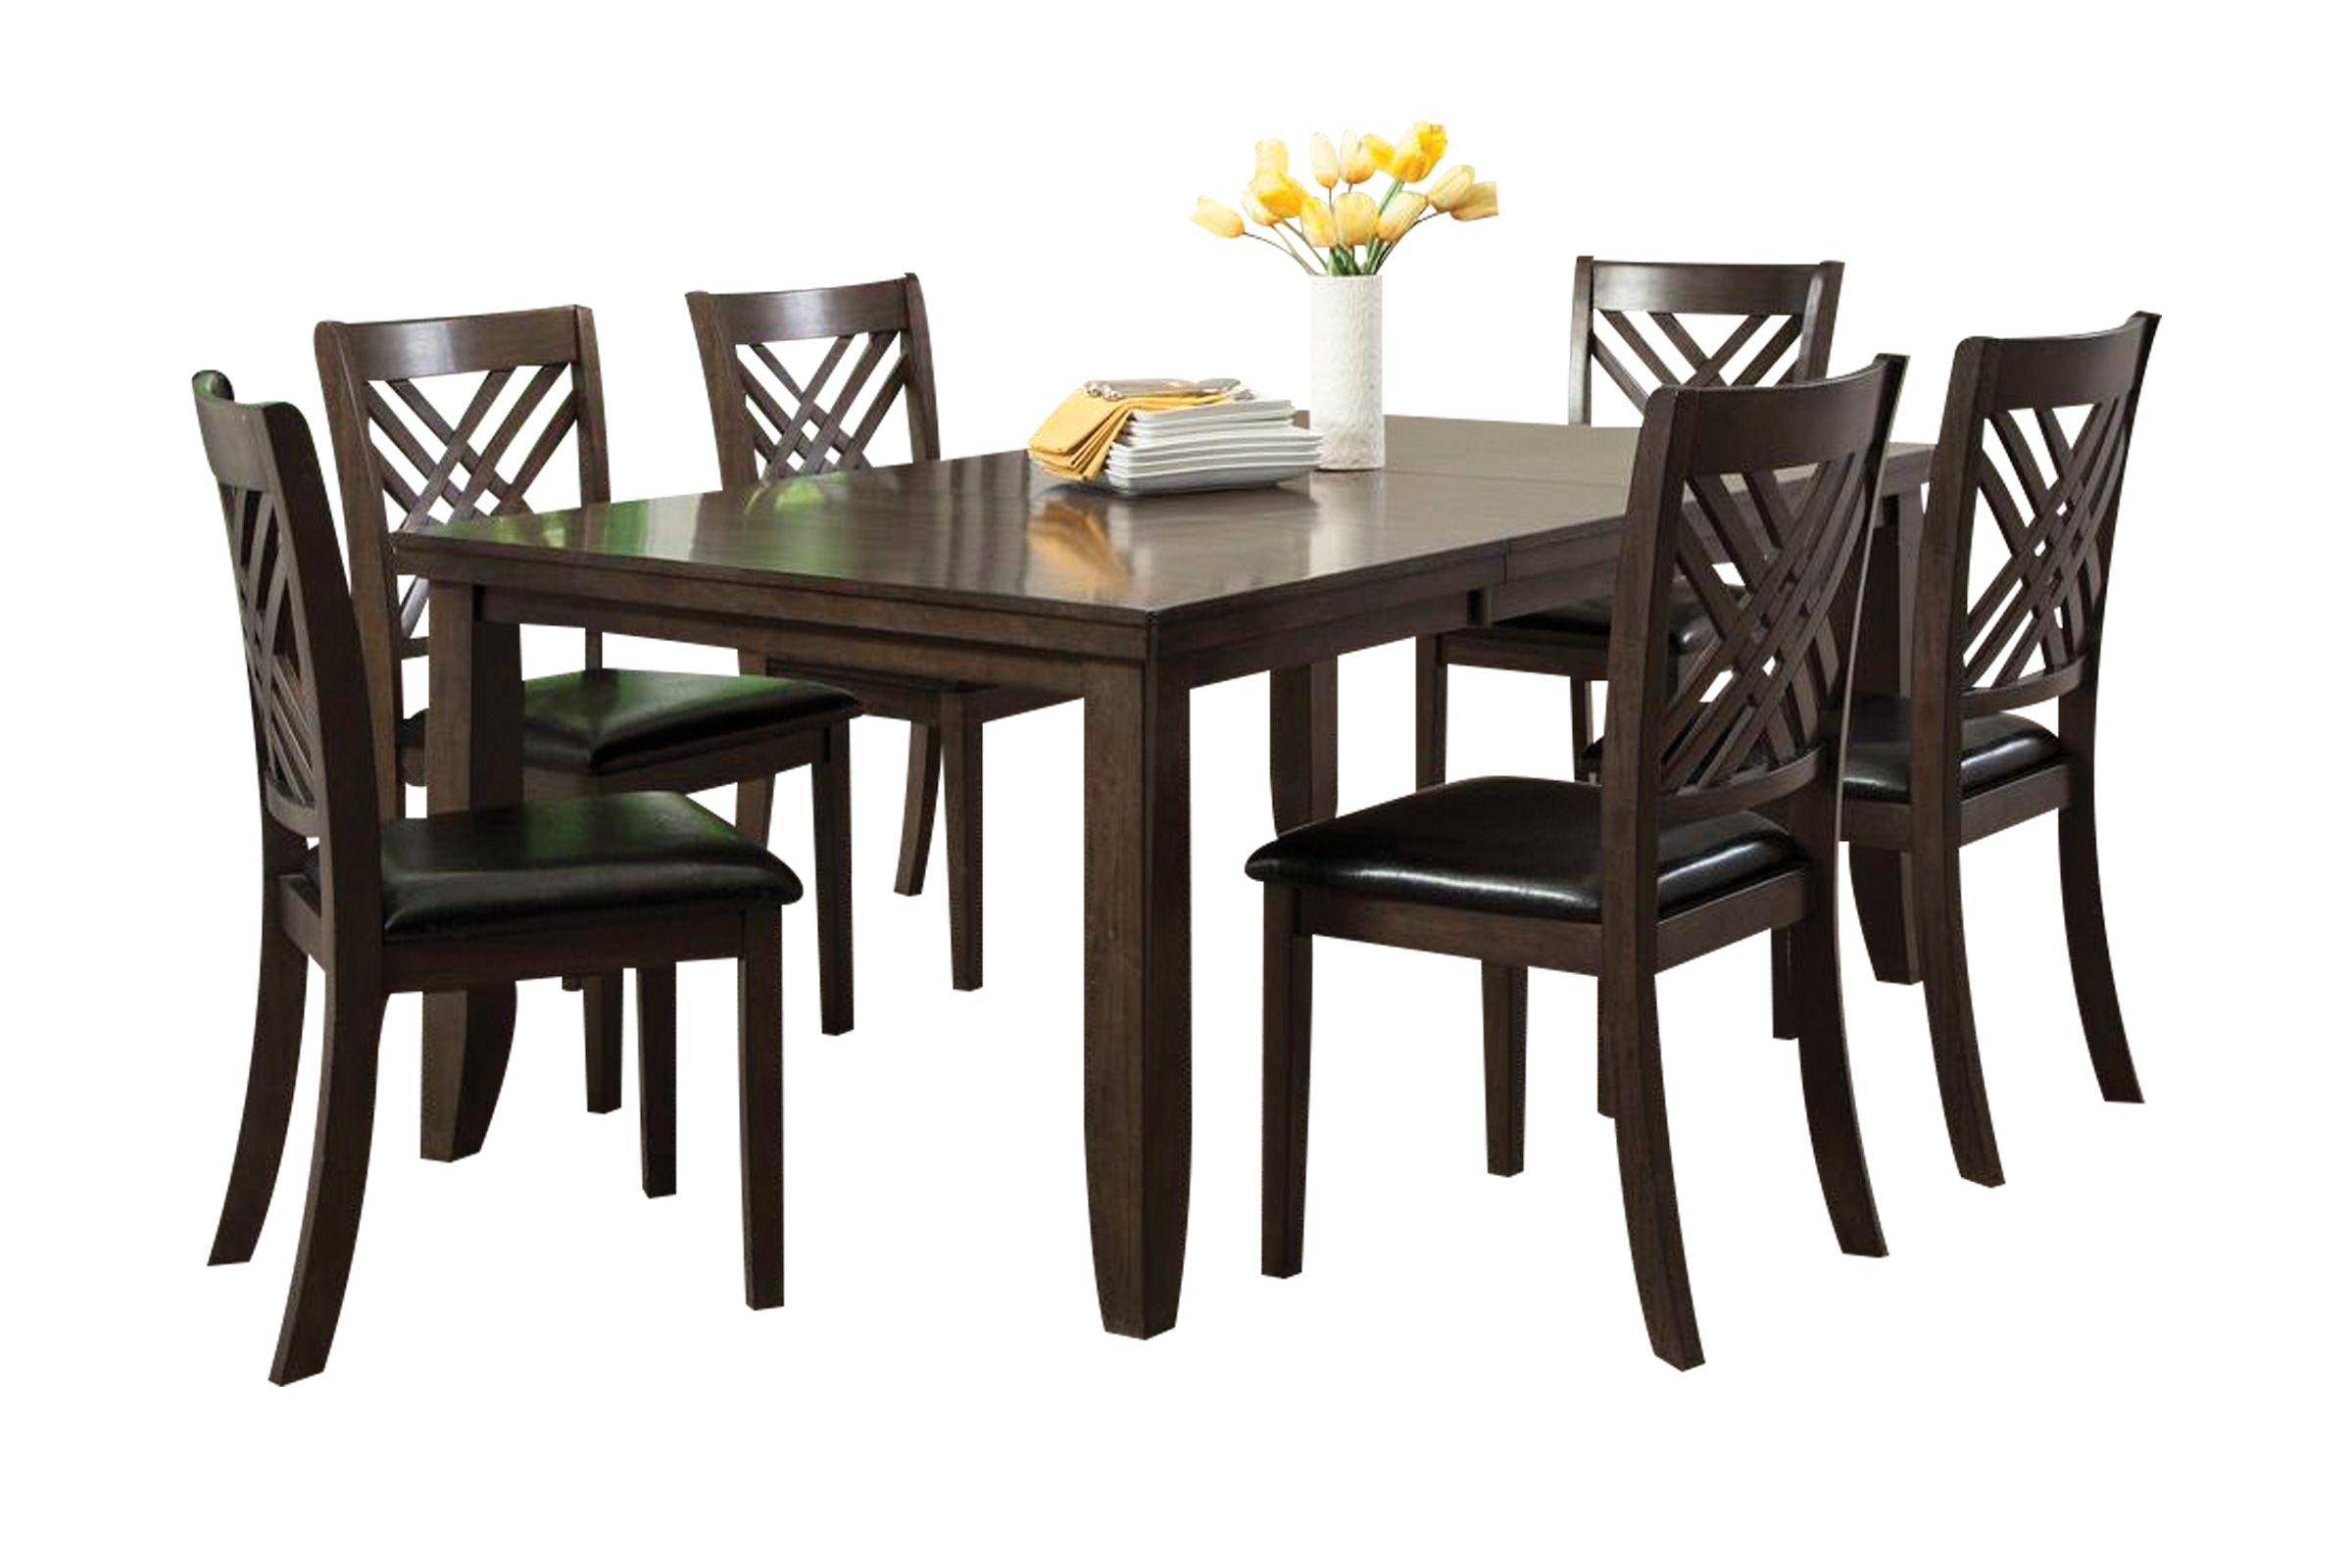 Lebaron Table 6 Side Chairs Now 79999 63999 We Pay Your Tax